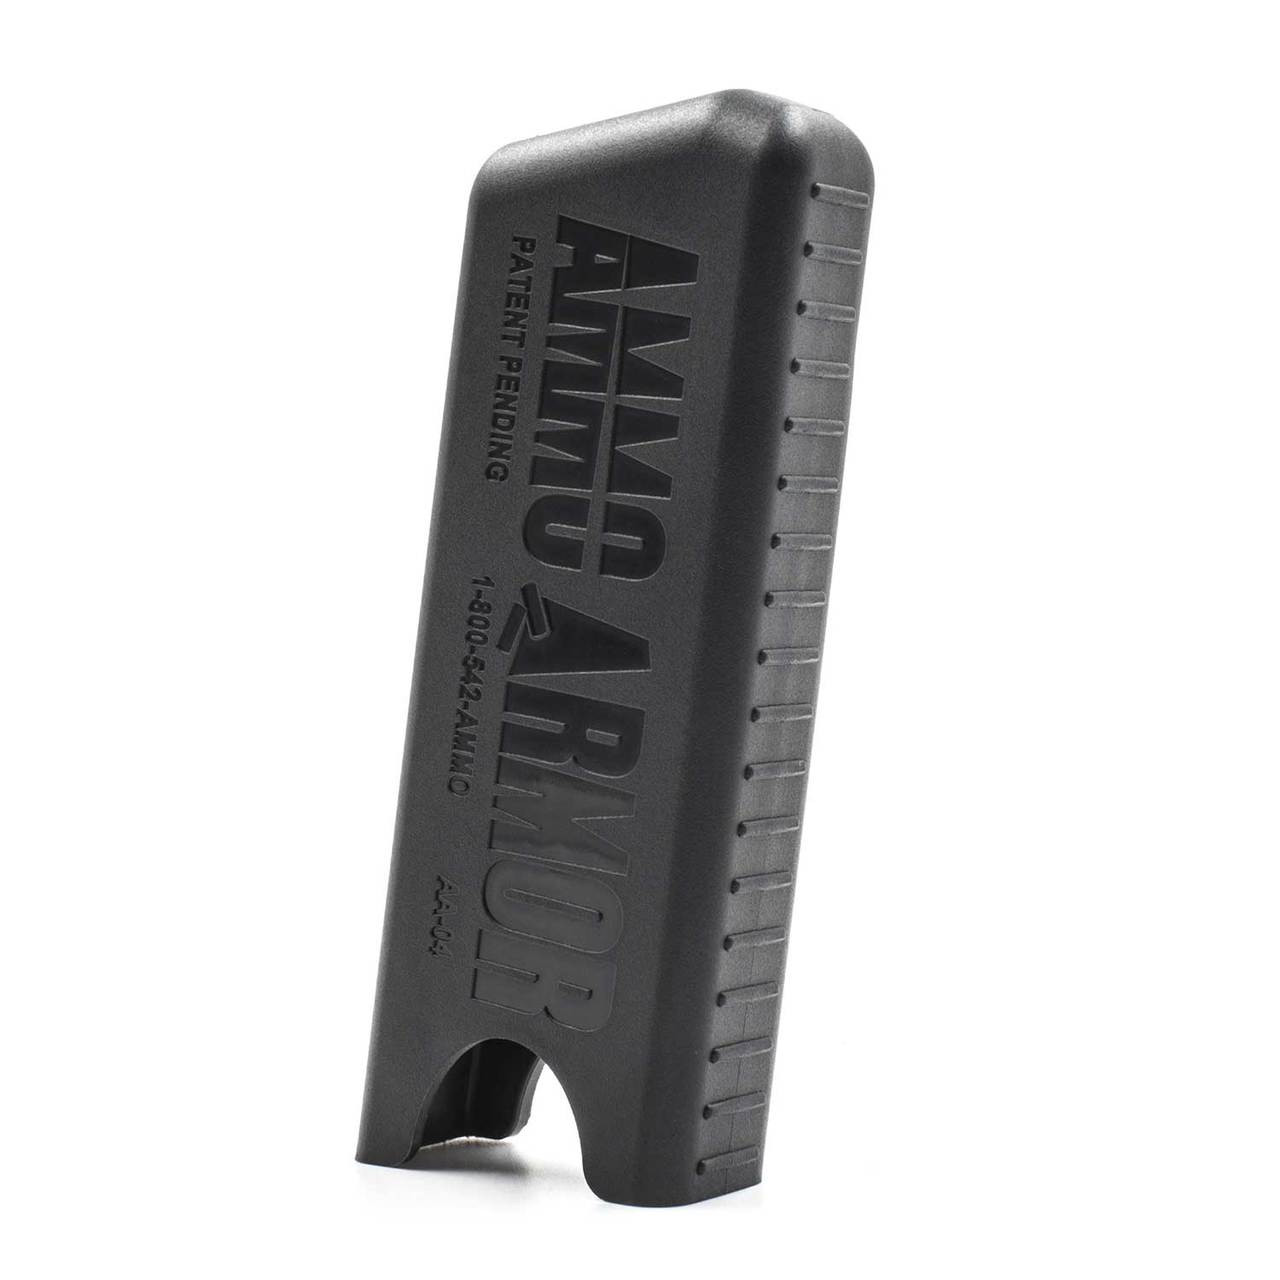 Beretta APX Carry Ammo Armor